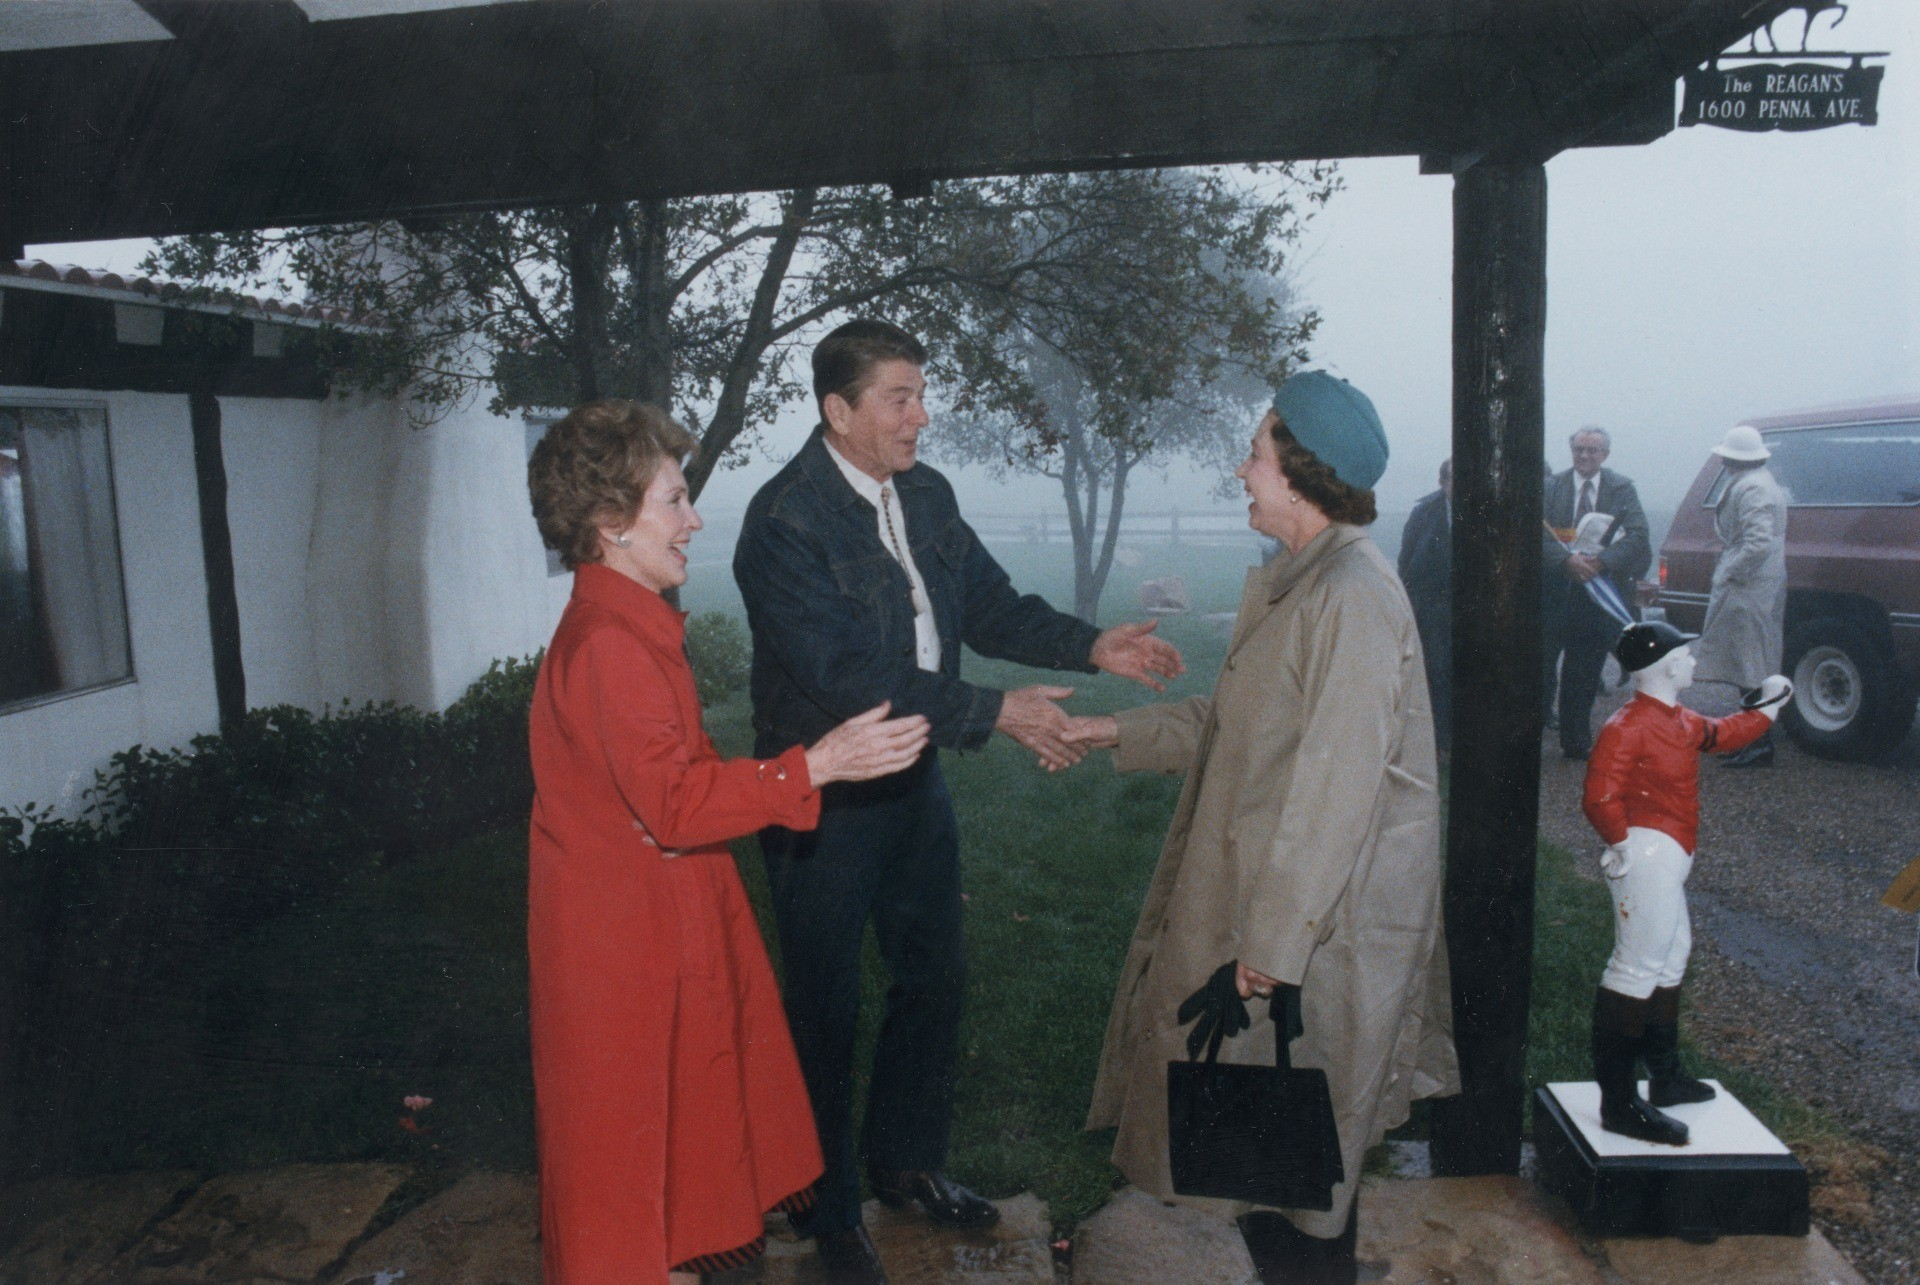 1st March 1983: US president Ronald Reagan and First Lady Nancy Reagan welcome Queen Elizabeth II to their ranch at Rancho Del Cielo, California. Prince Philip accompanied the Queen on her visit. (Photo by Ronald Reagan Library/Getty Images)